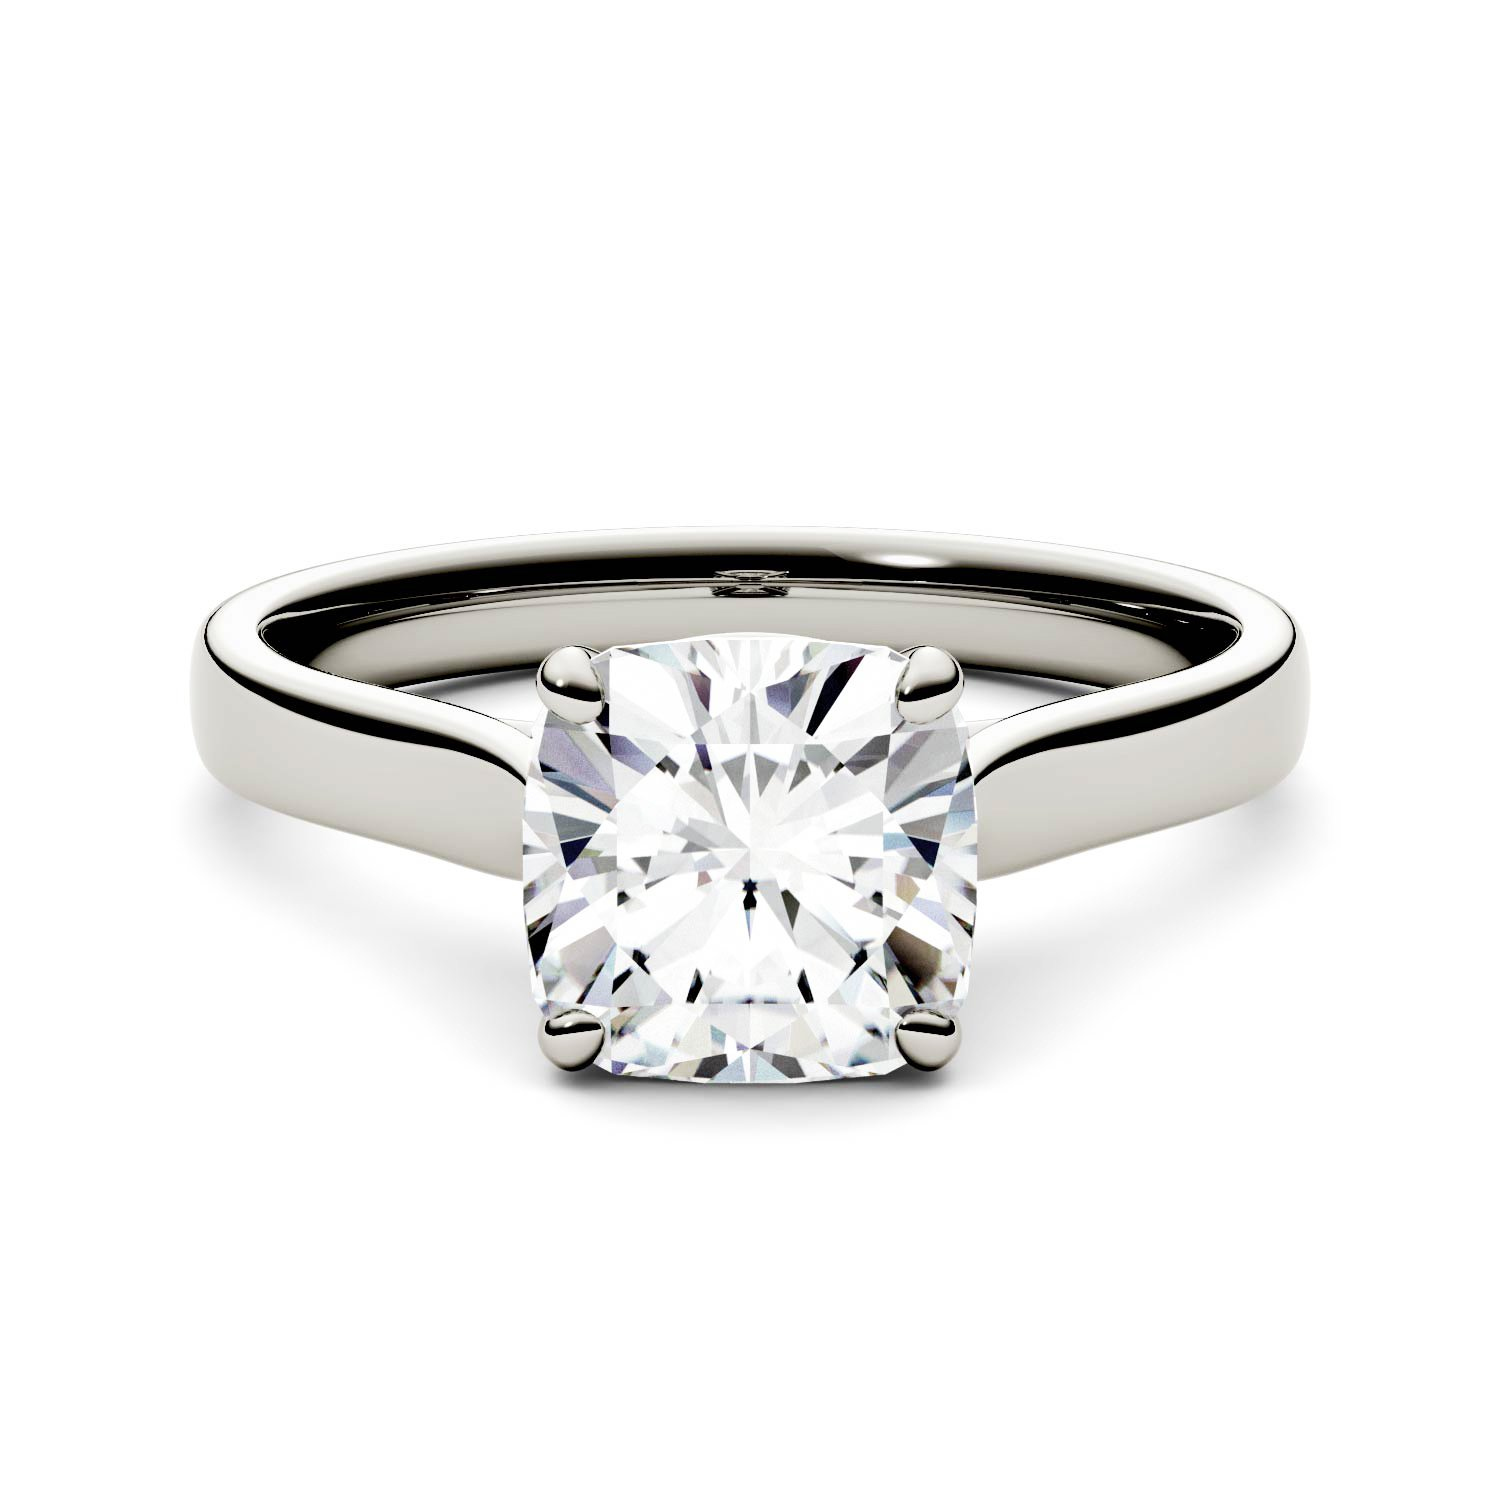 Forever One Cushion 7.5mm Moissanite Engagement Ring-size 7, 2.00ct DEW (D-E-F) By Charles & Colvard